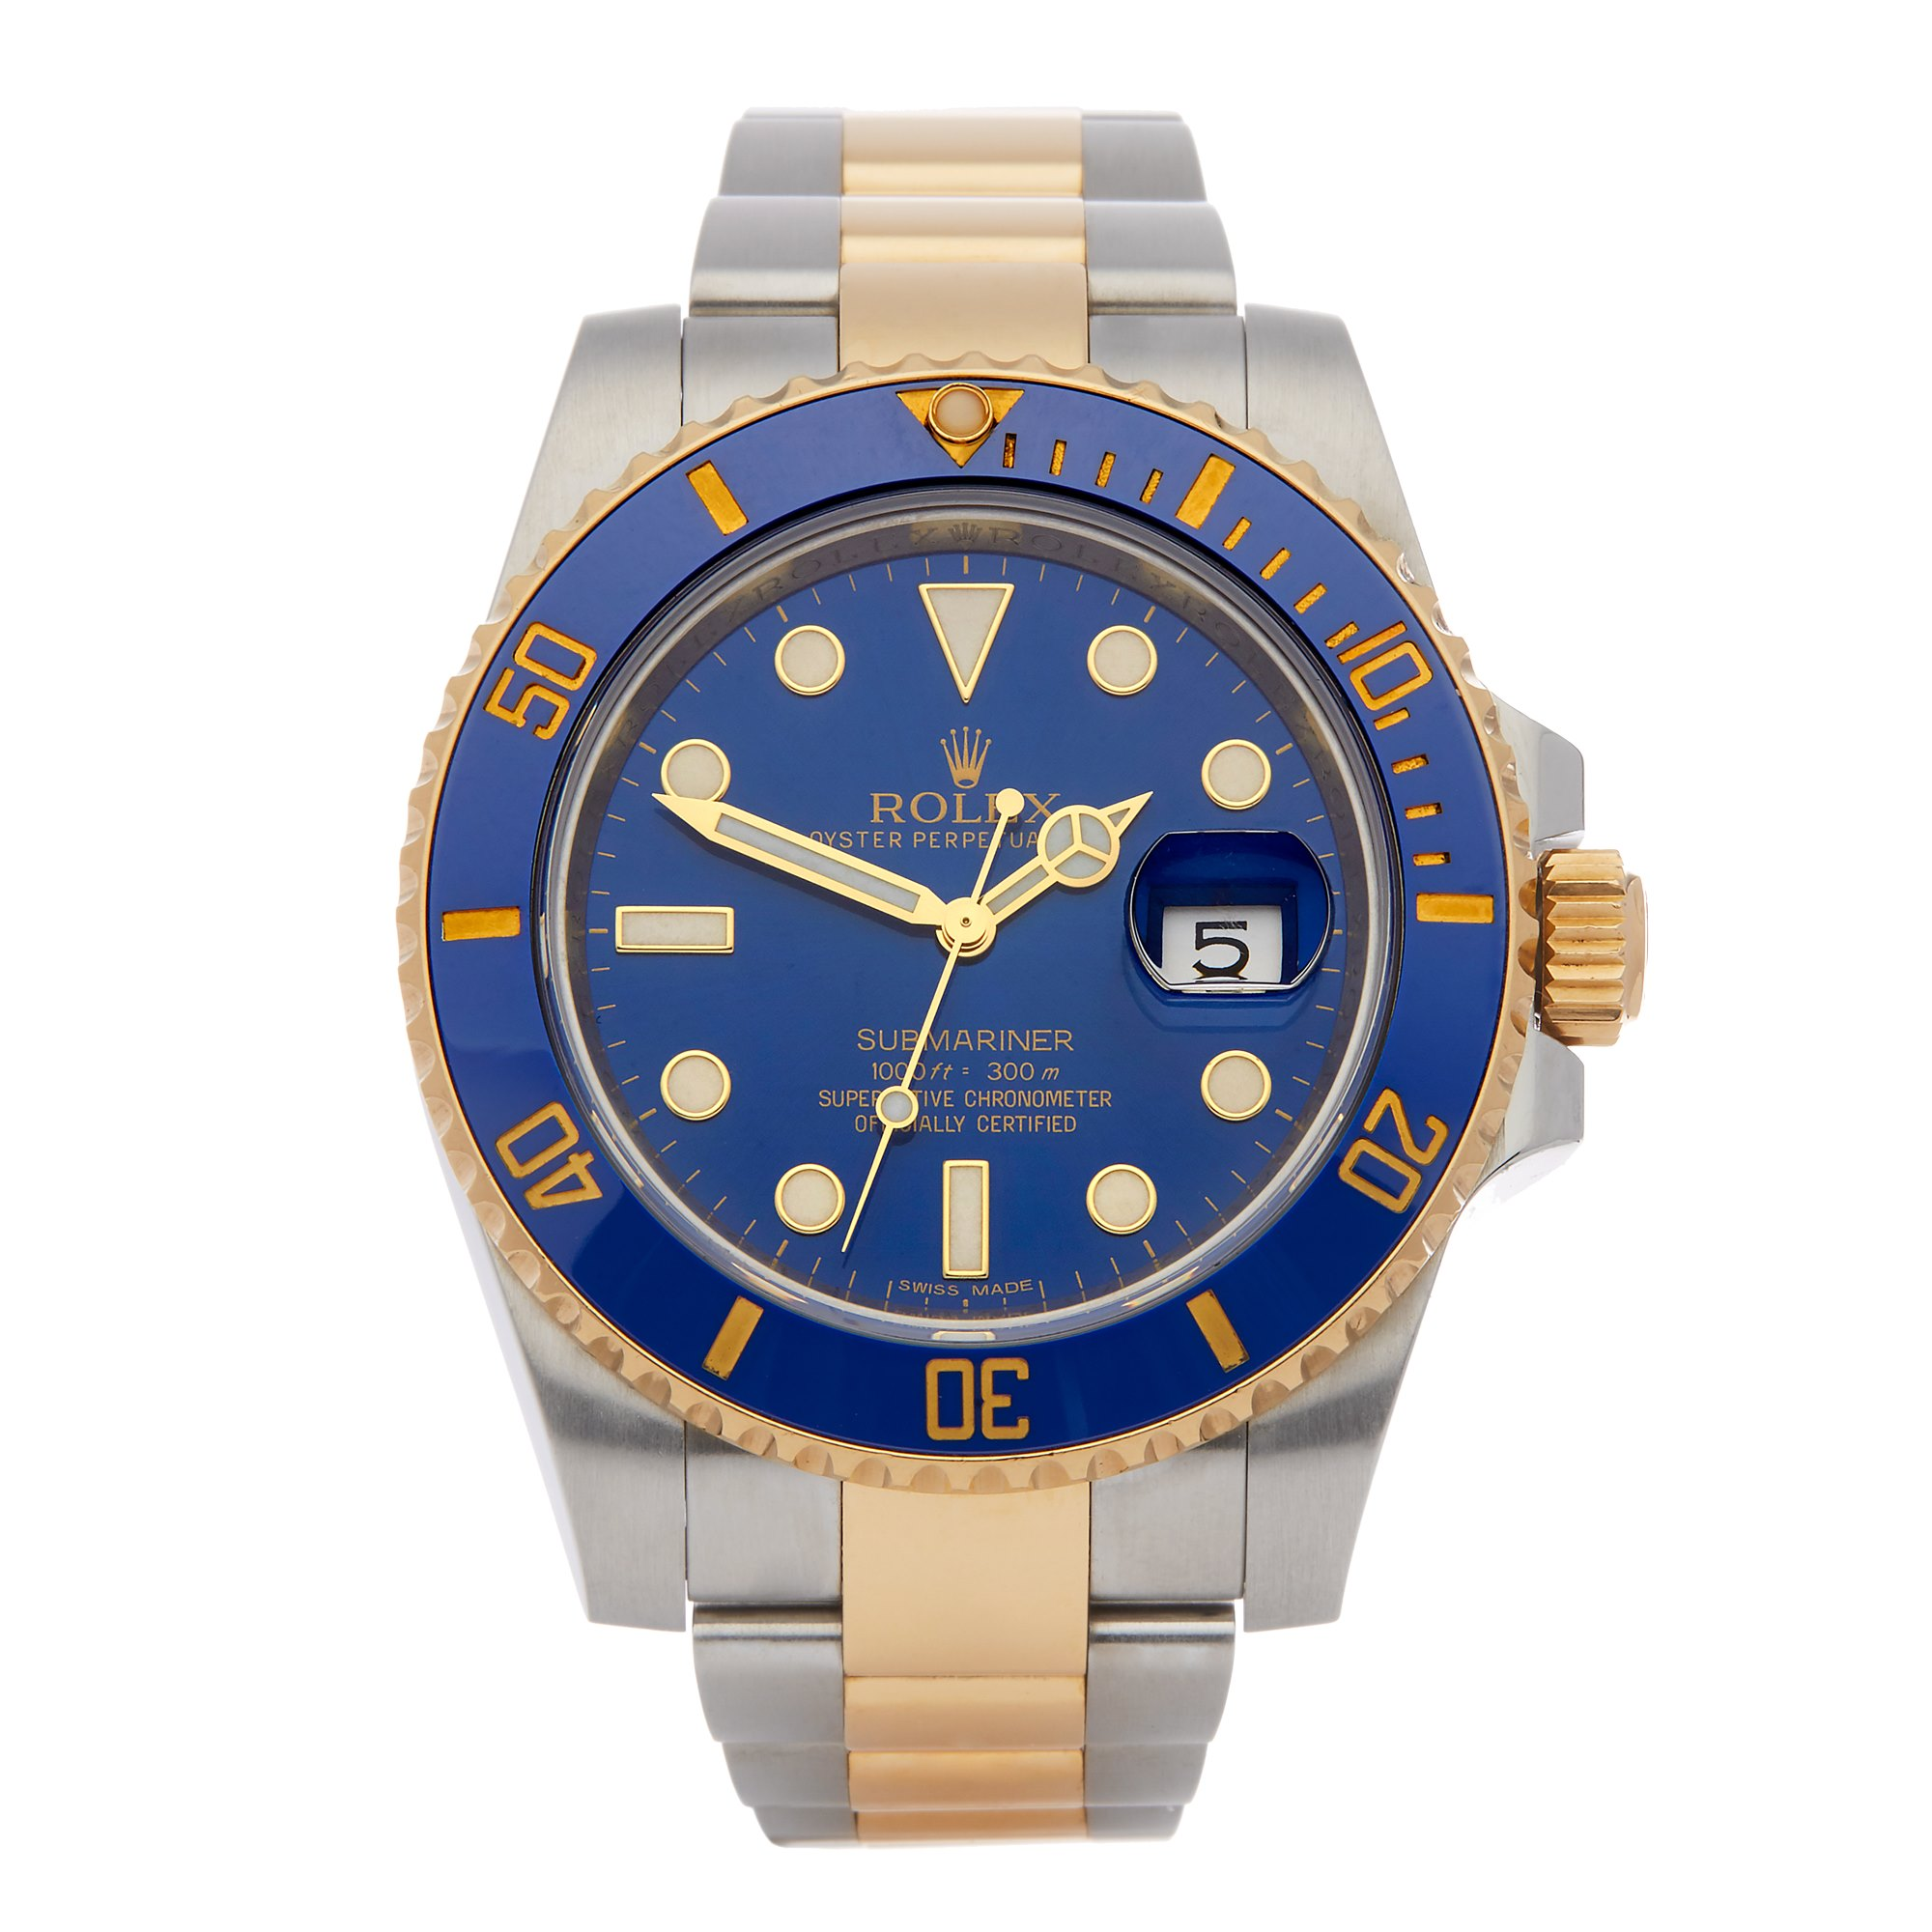 Rolex Submariner Date 18K Yellow Gold & Stainless Steel 116613LB